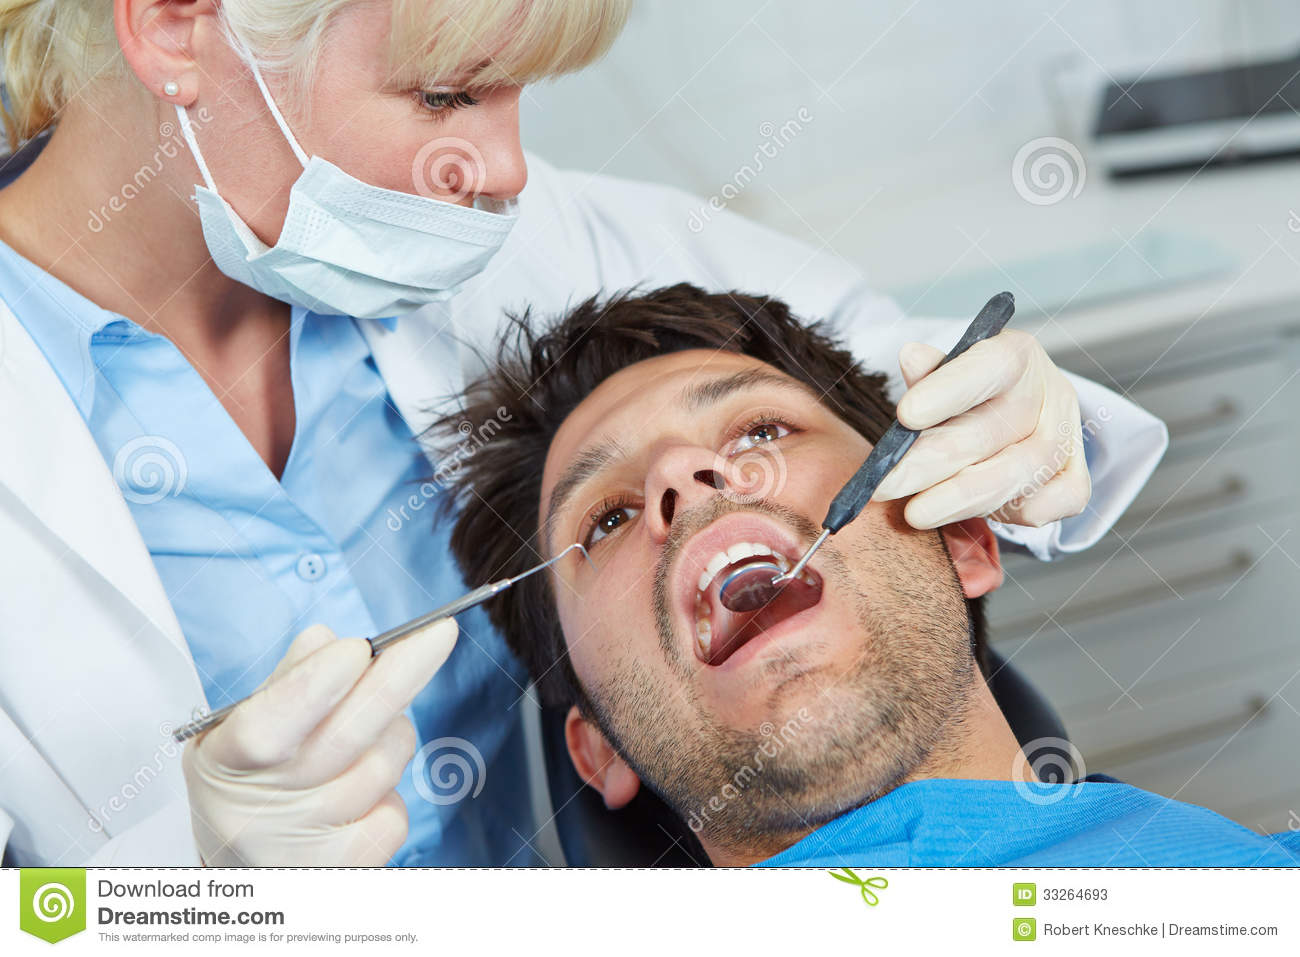 Dentiste avec le miroir et la sonde photos stock image for Miroir de dentiste